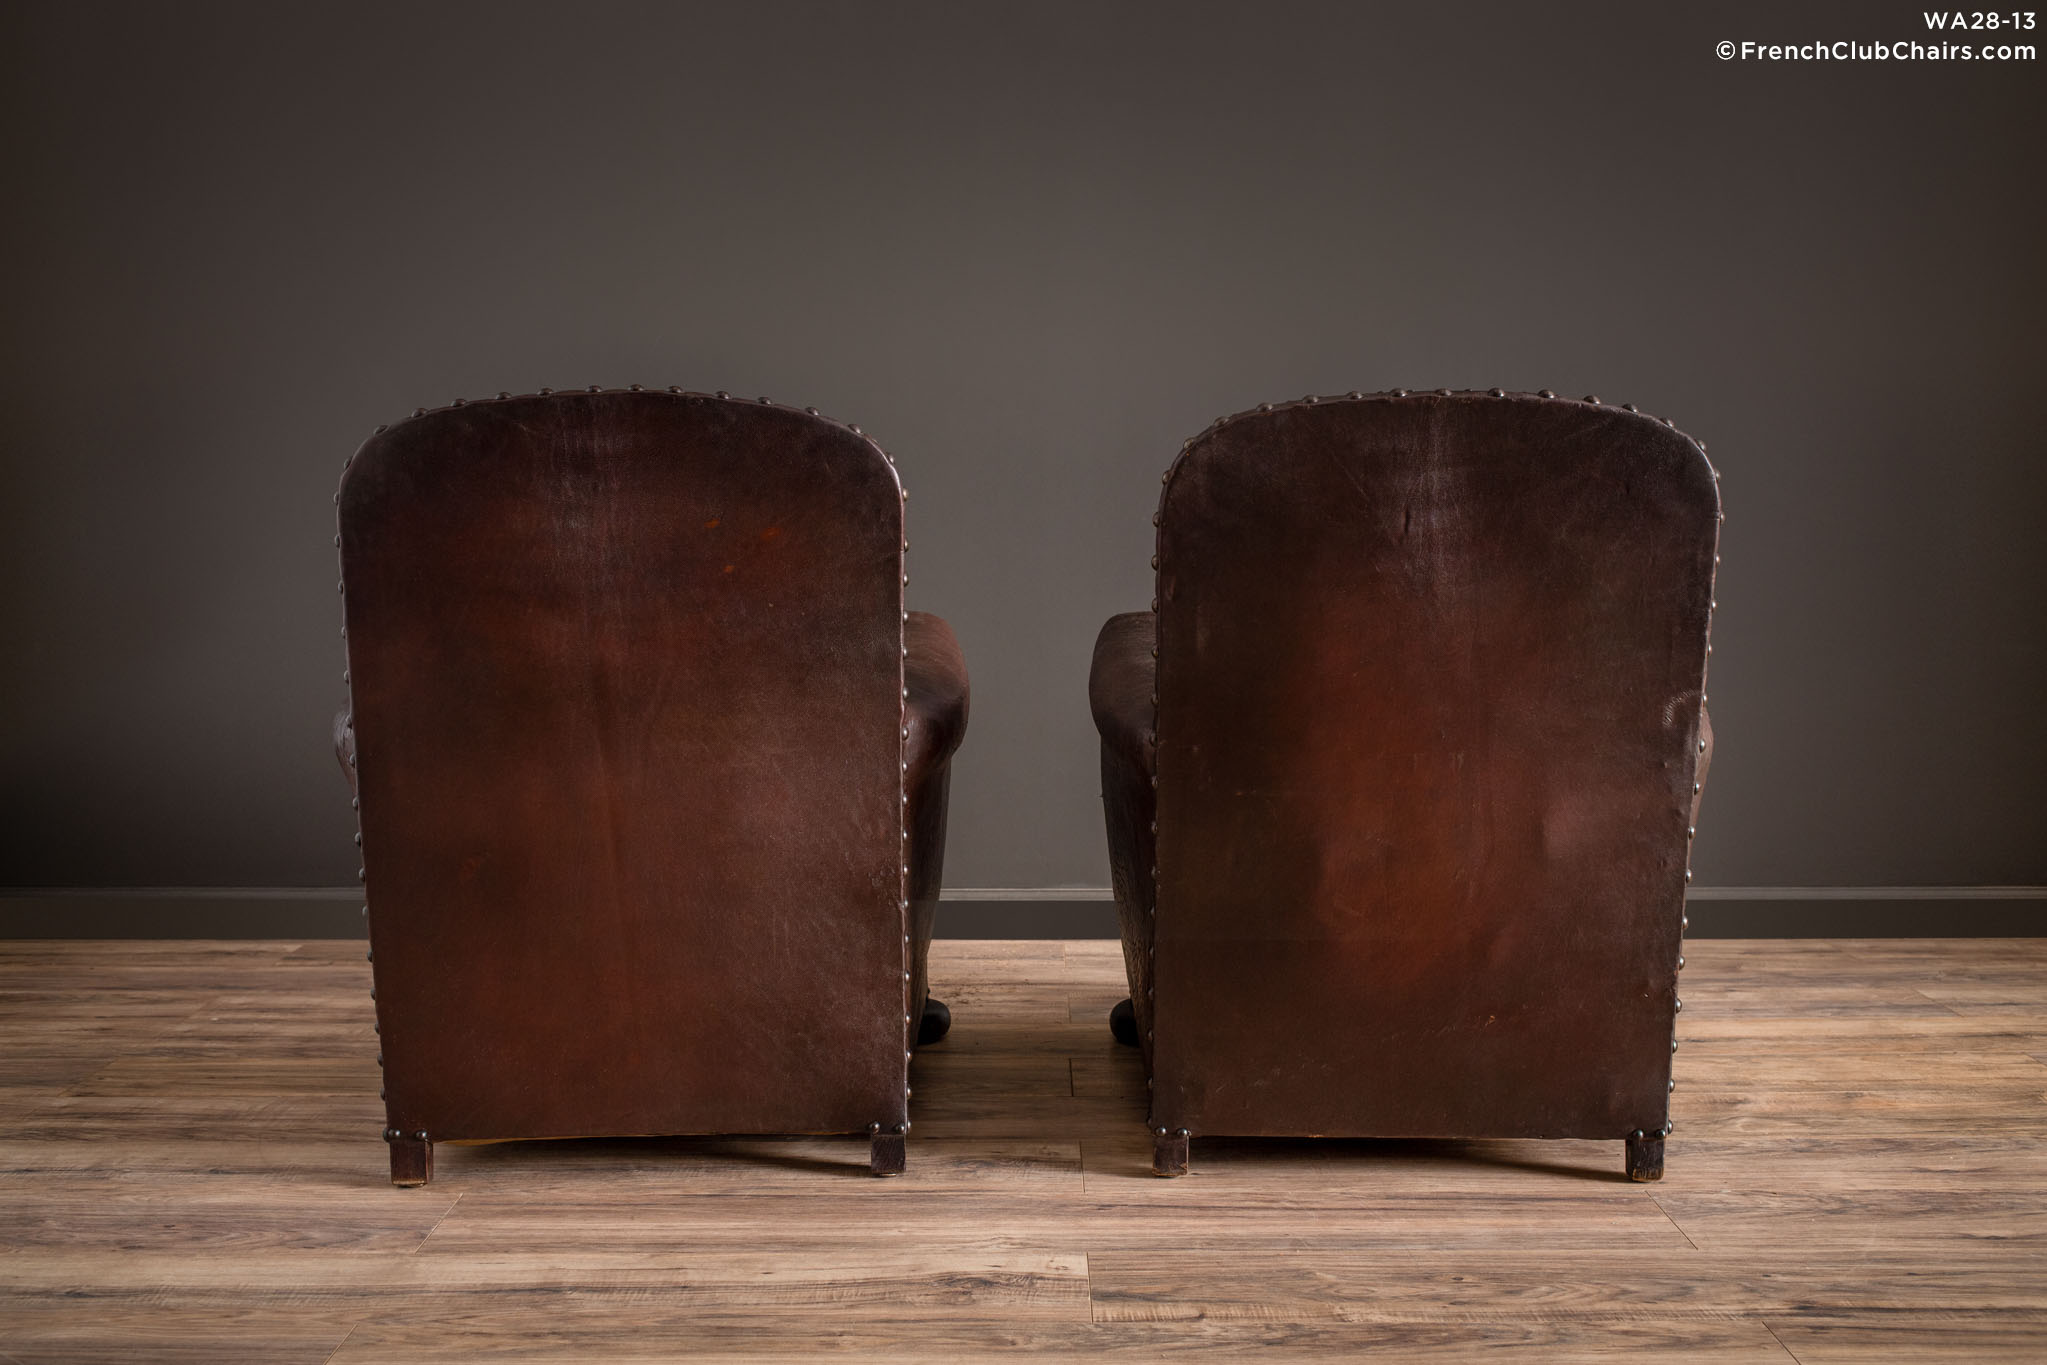 WA_28-13_St_Imoge_Cinema_Nailhead_Pair_R_2BK1-williams-antiks-leather-french-club-chair-wa_fcccom